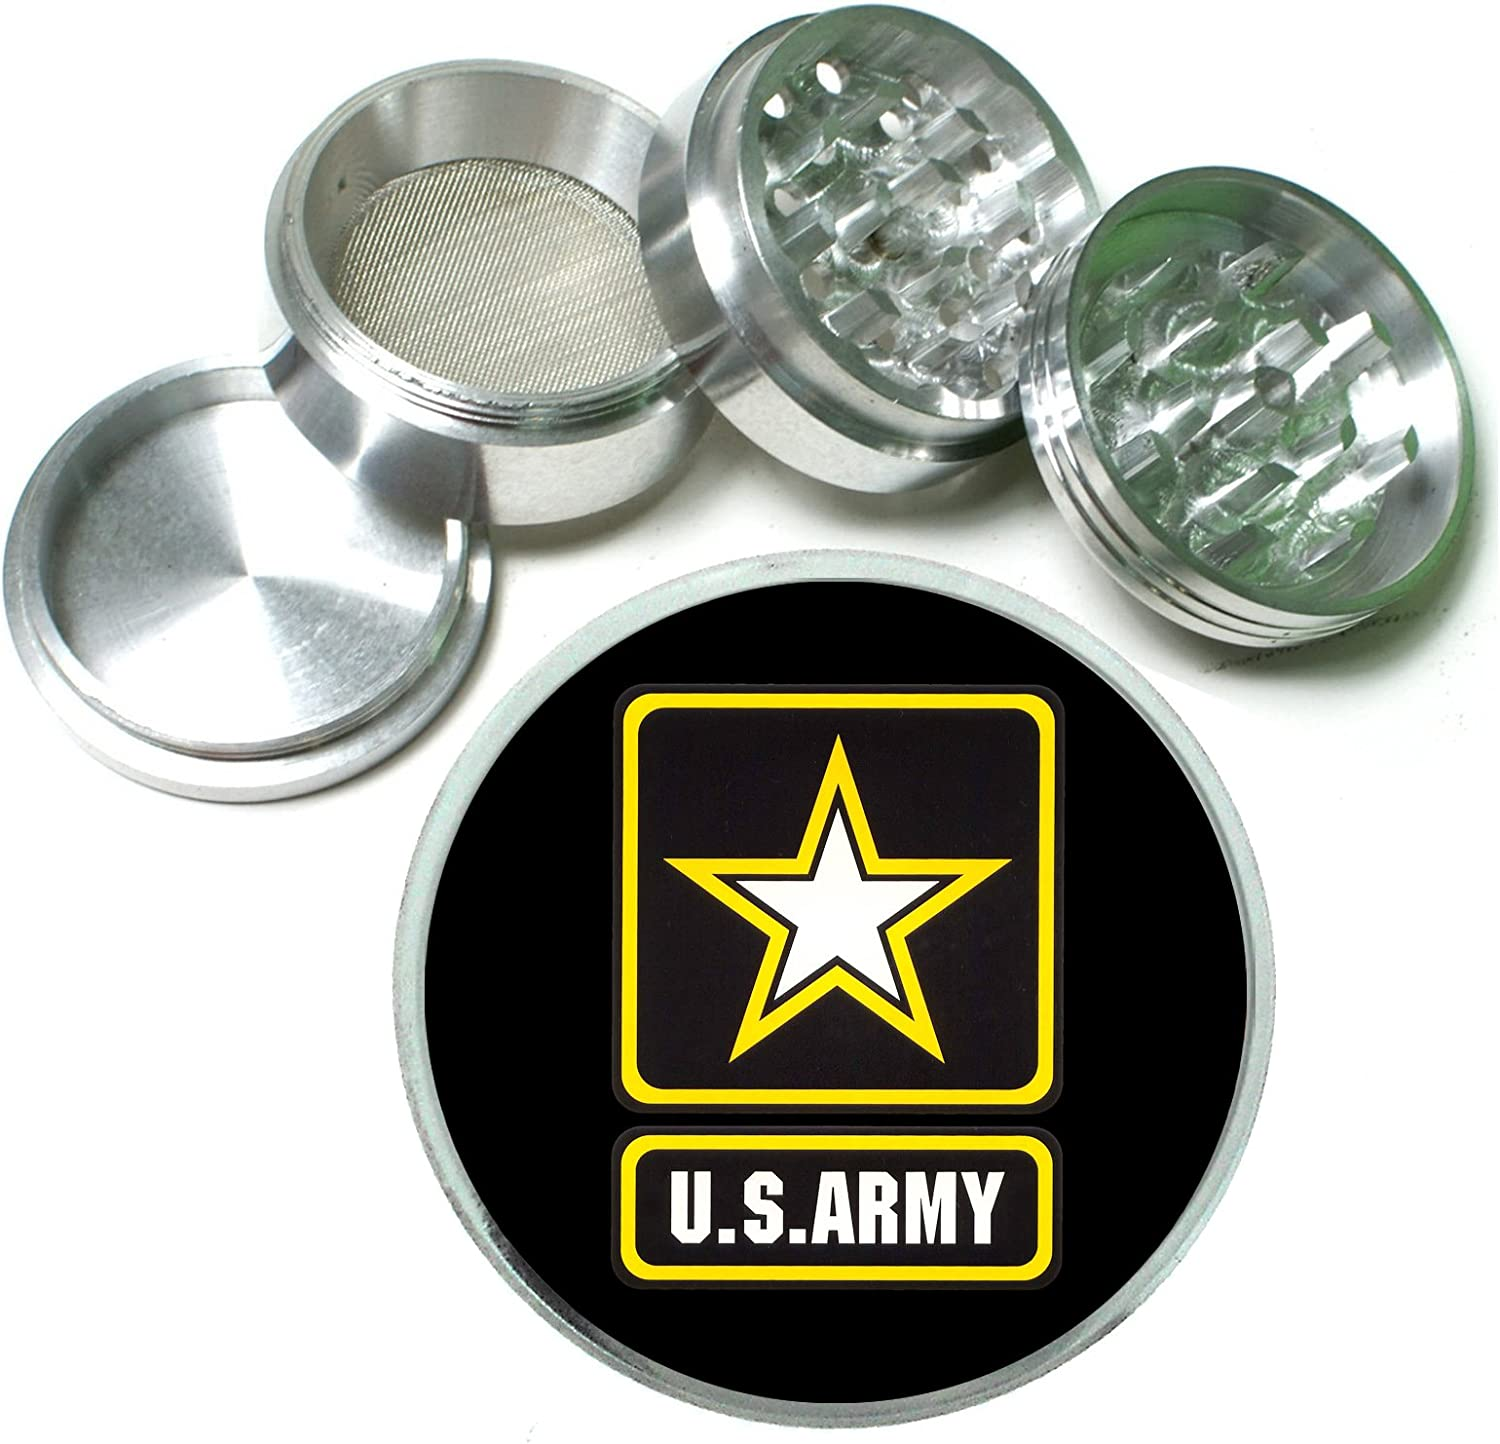 Army US Soldier Hero 4 Free shipping on posting reviews Pc. San Francisco Mall Grinder Spice Aluminum Tobacco Herb